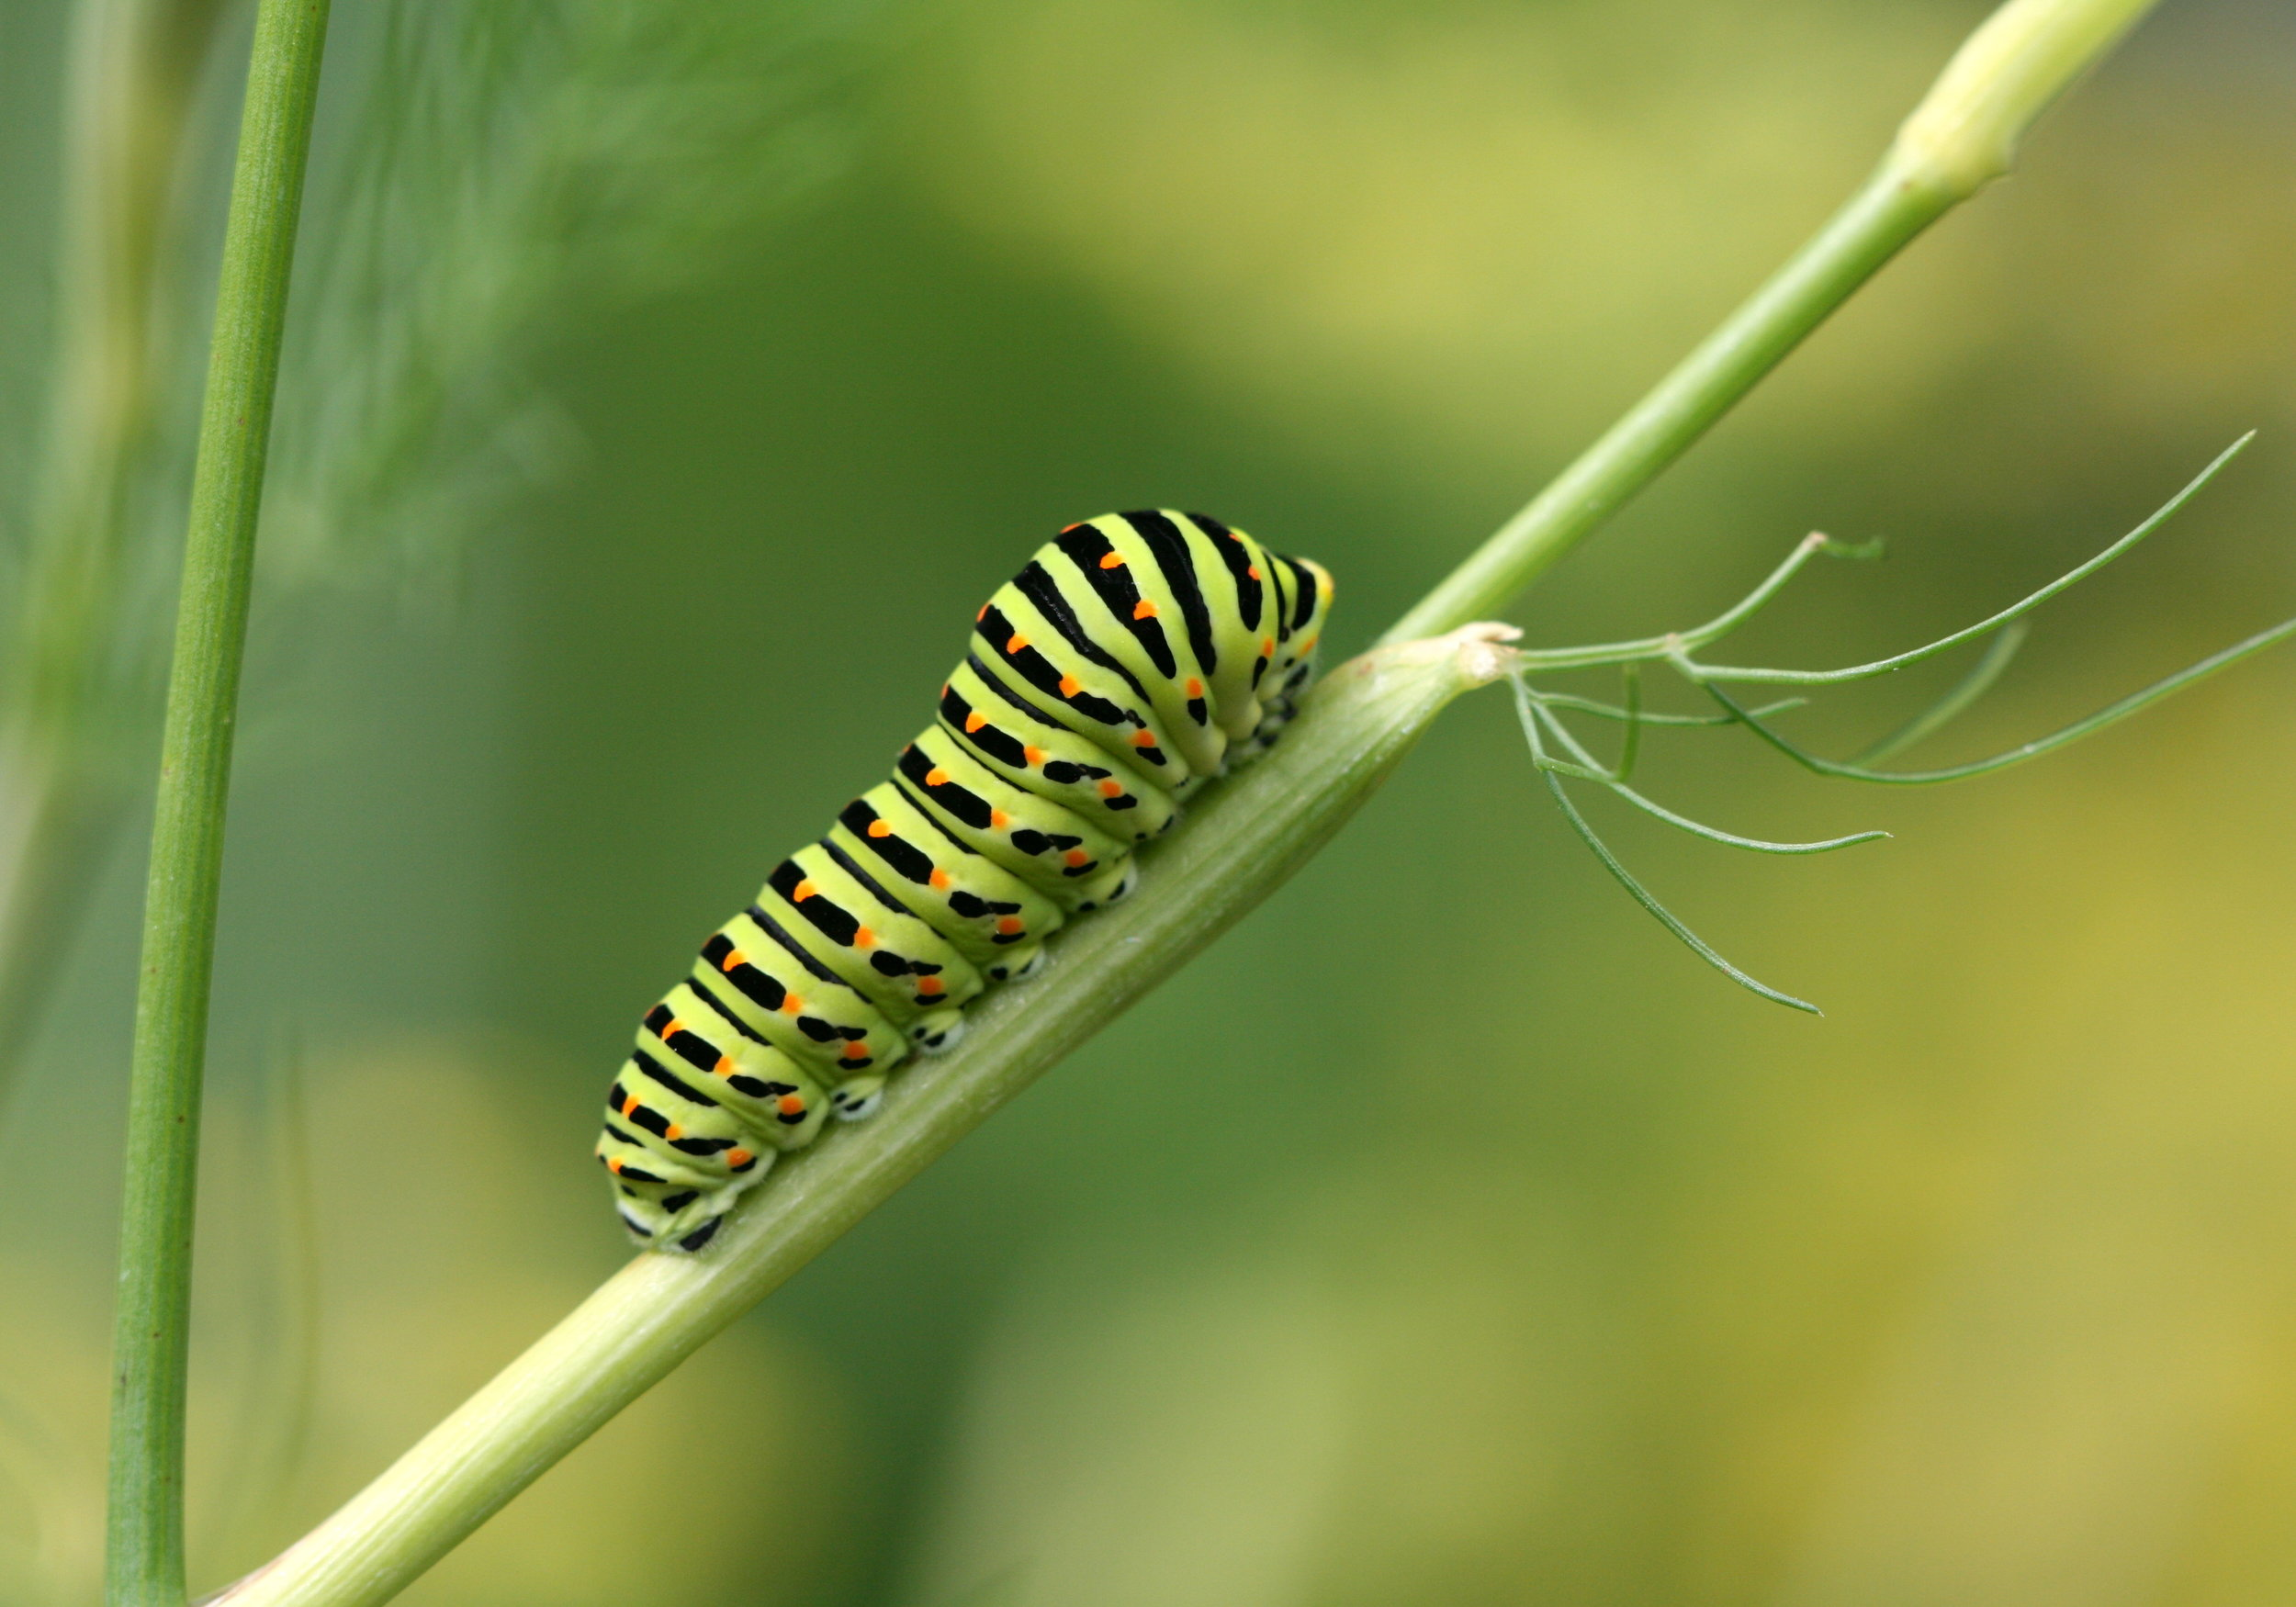 The caterpillar dissolves and is reborn as the butterfly.